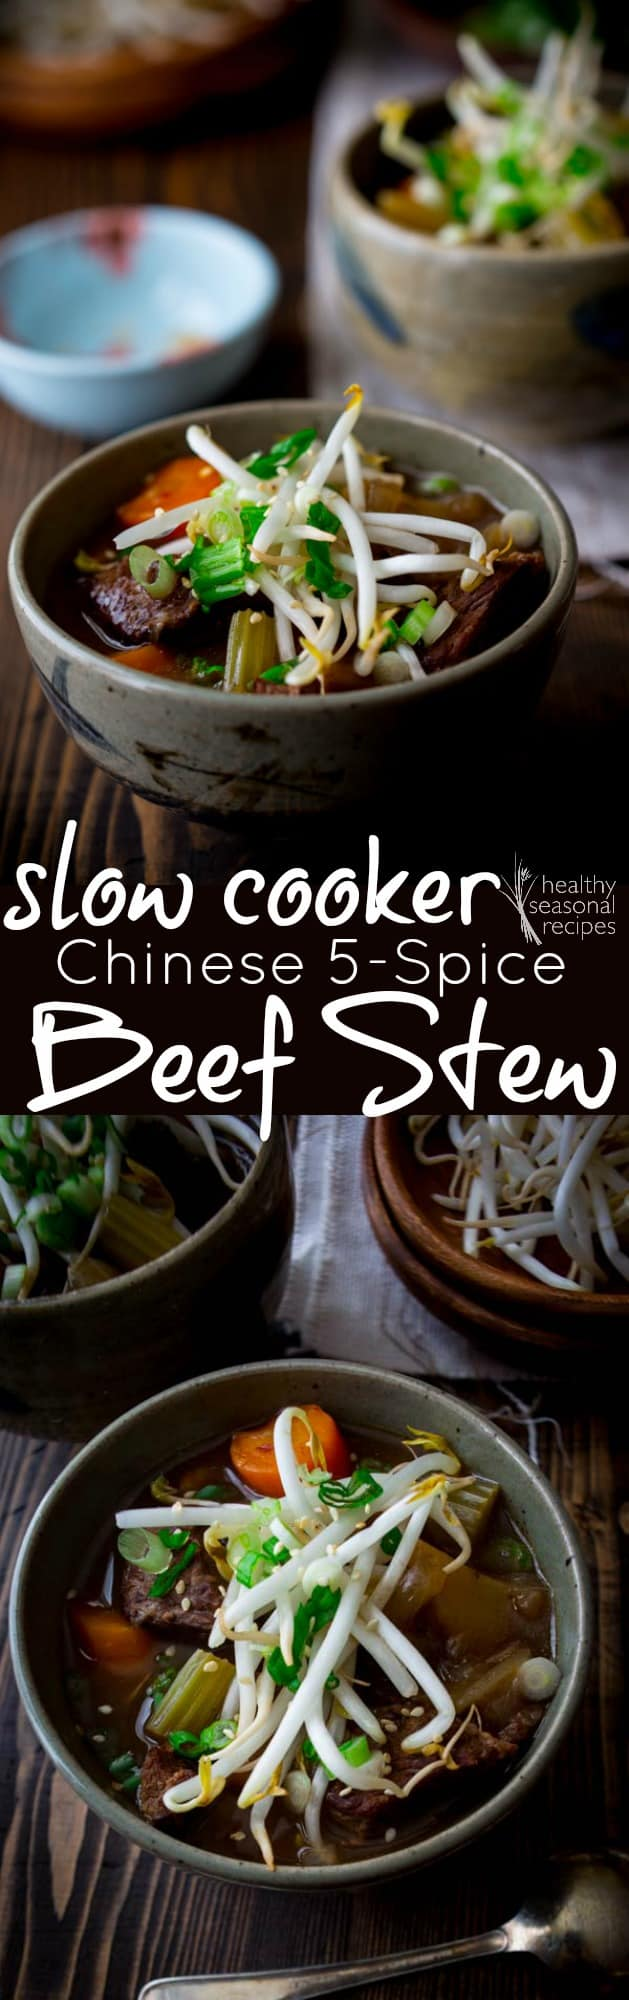 This slow cooker beef stew is flavored with Chinese 5 spice and is the perfect late winter entree. Plus, it's gluten-free and paleo-friendly. #slowcooker #crockpot #stew #beefstew #beef #5spice #paleo #glutenfree #winterrecipe #dinner #entree